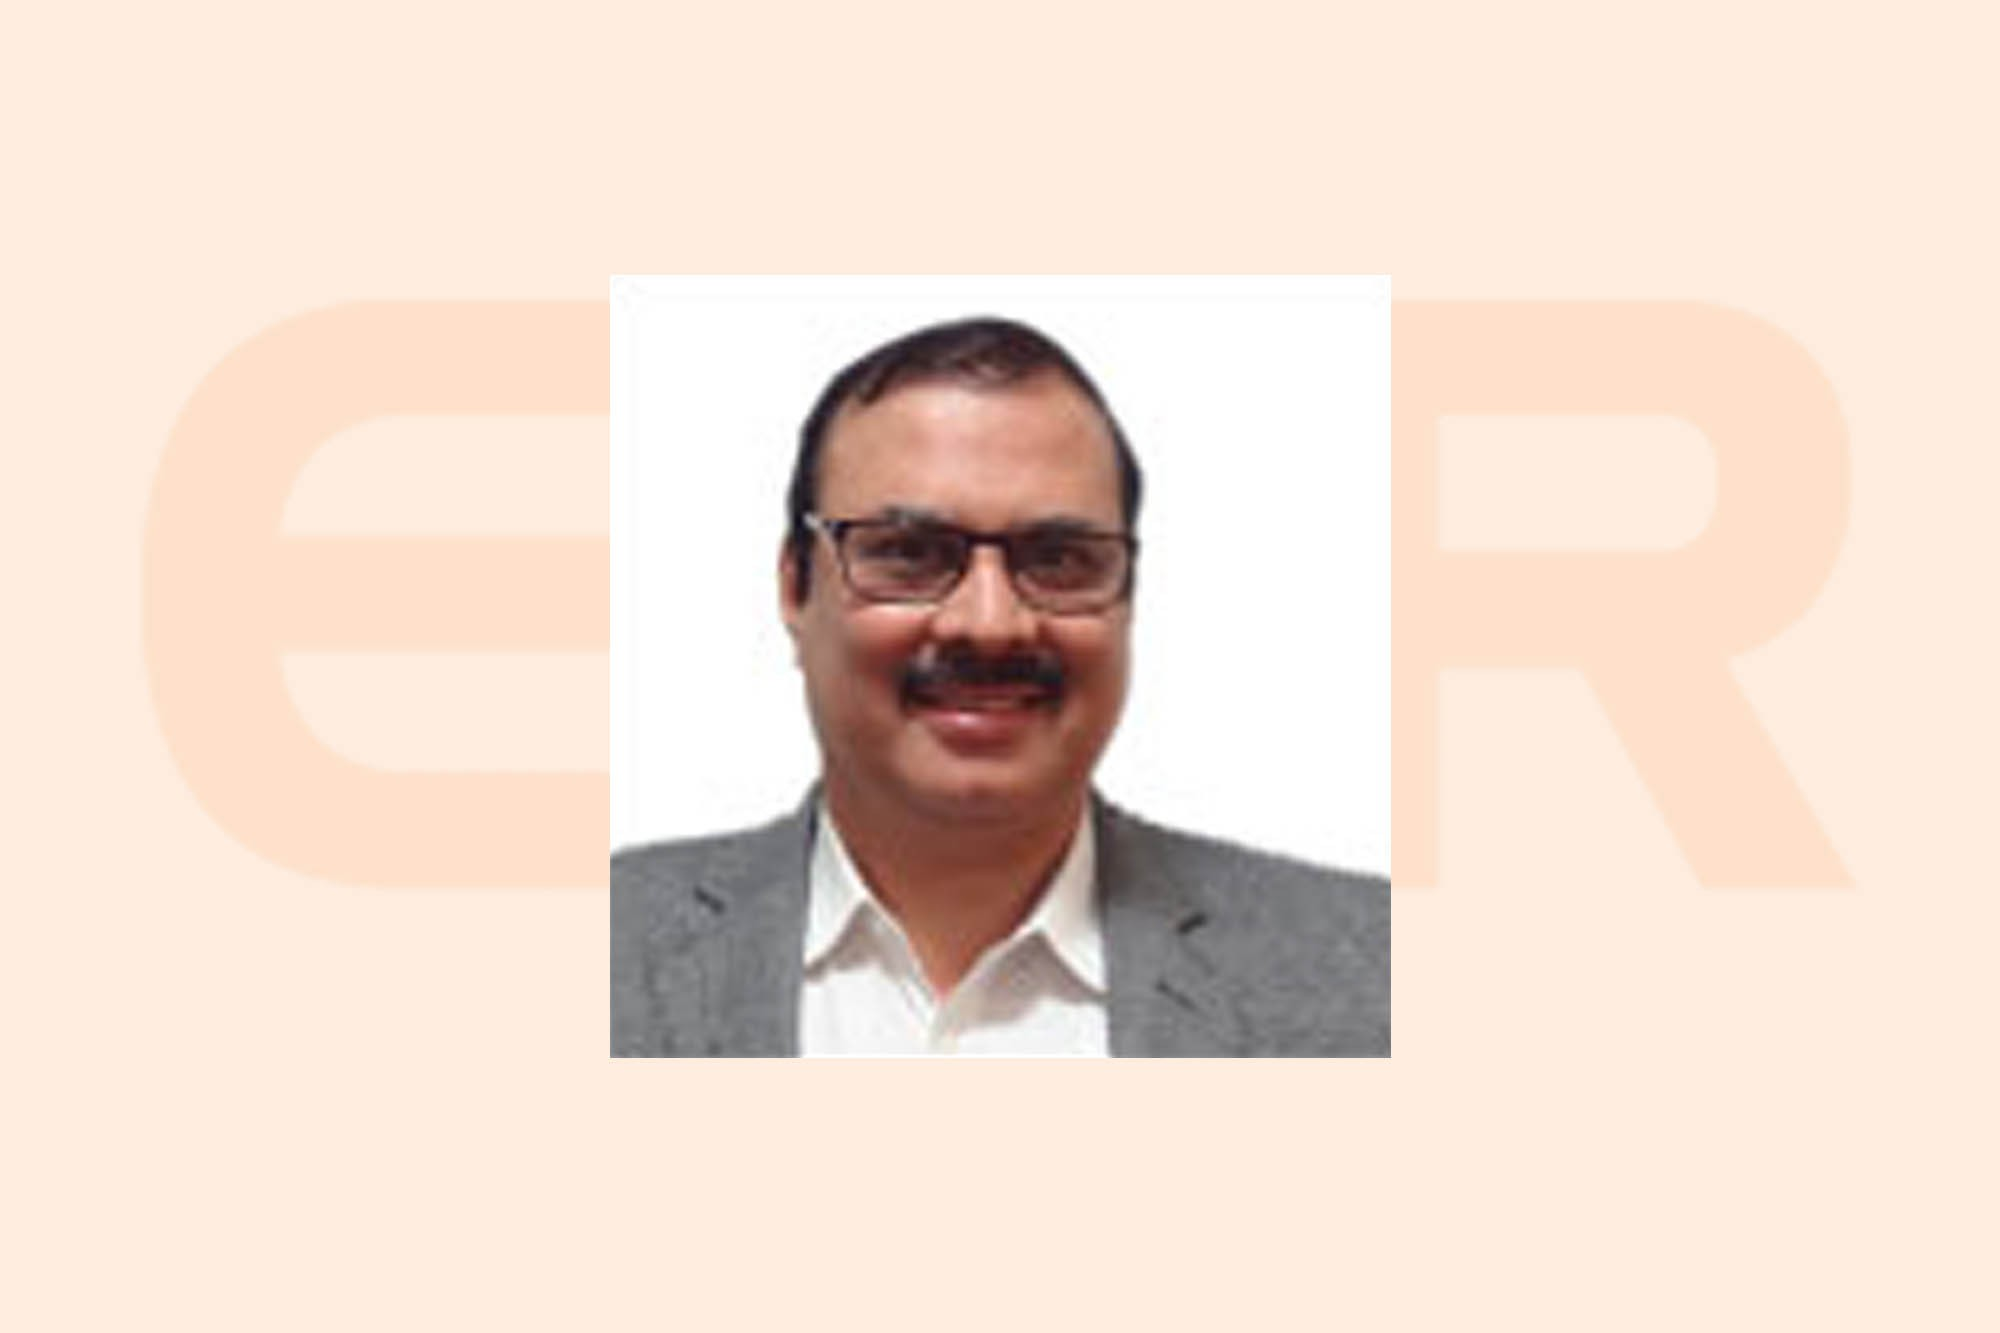 Shrirang Karandikar, CEO, India Power Corporation